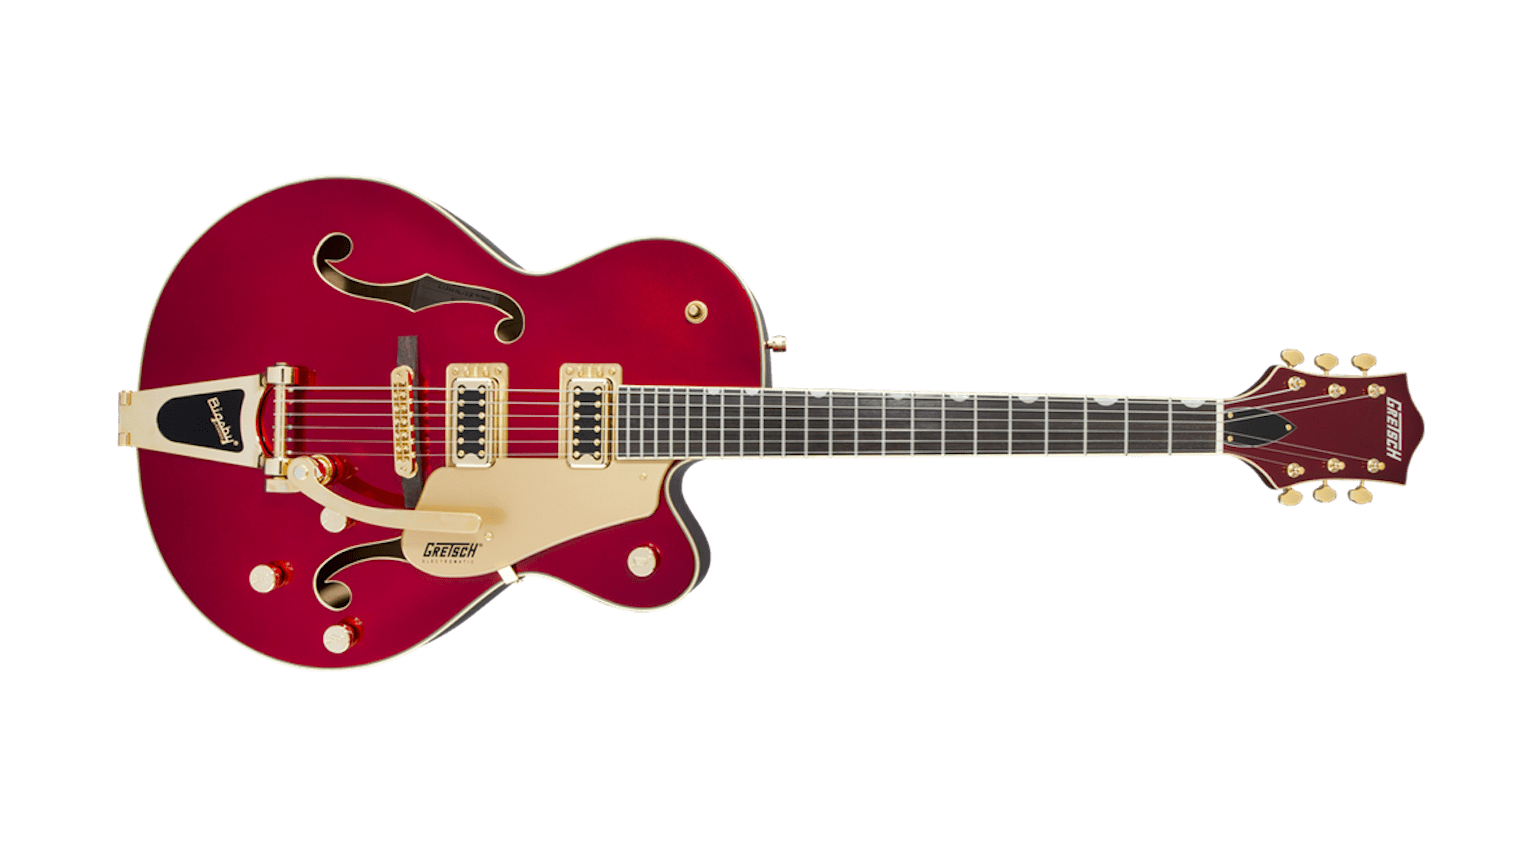 G5420TG Limited Edition Electromatic Single-Cut Hollow Body with Bigsby Gold Hardware